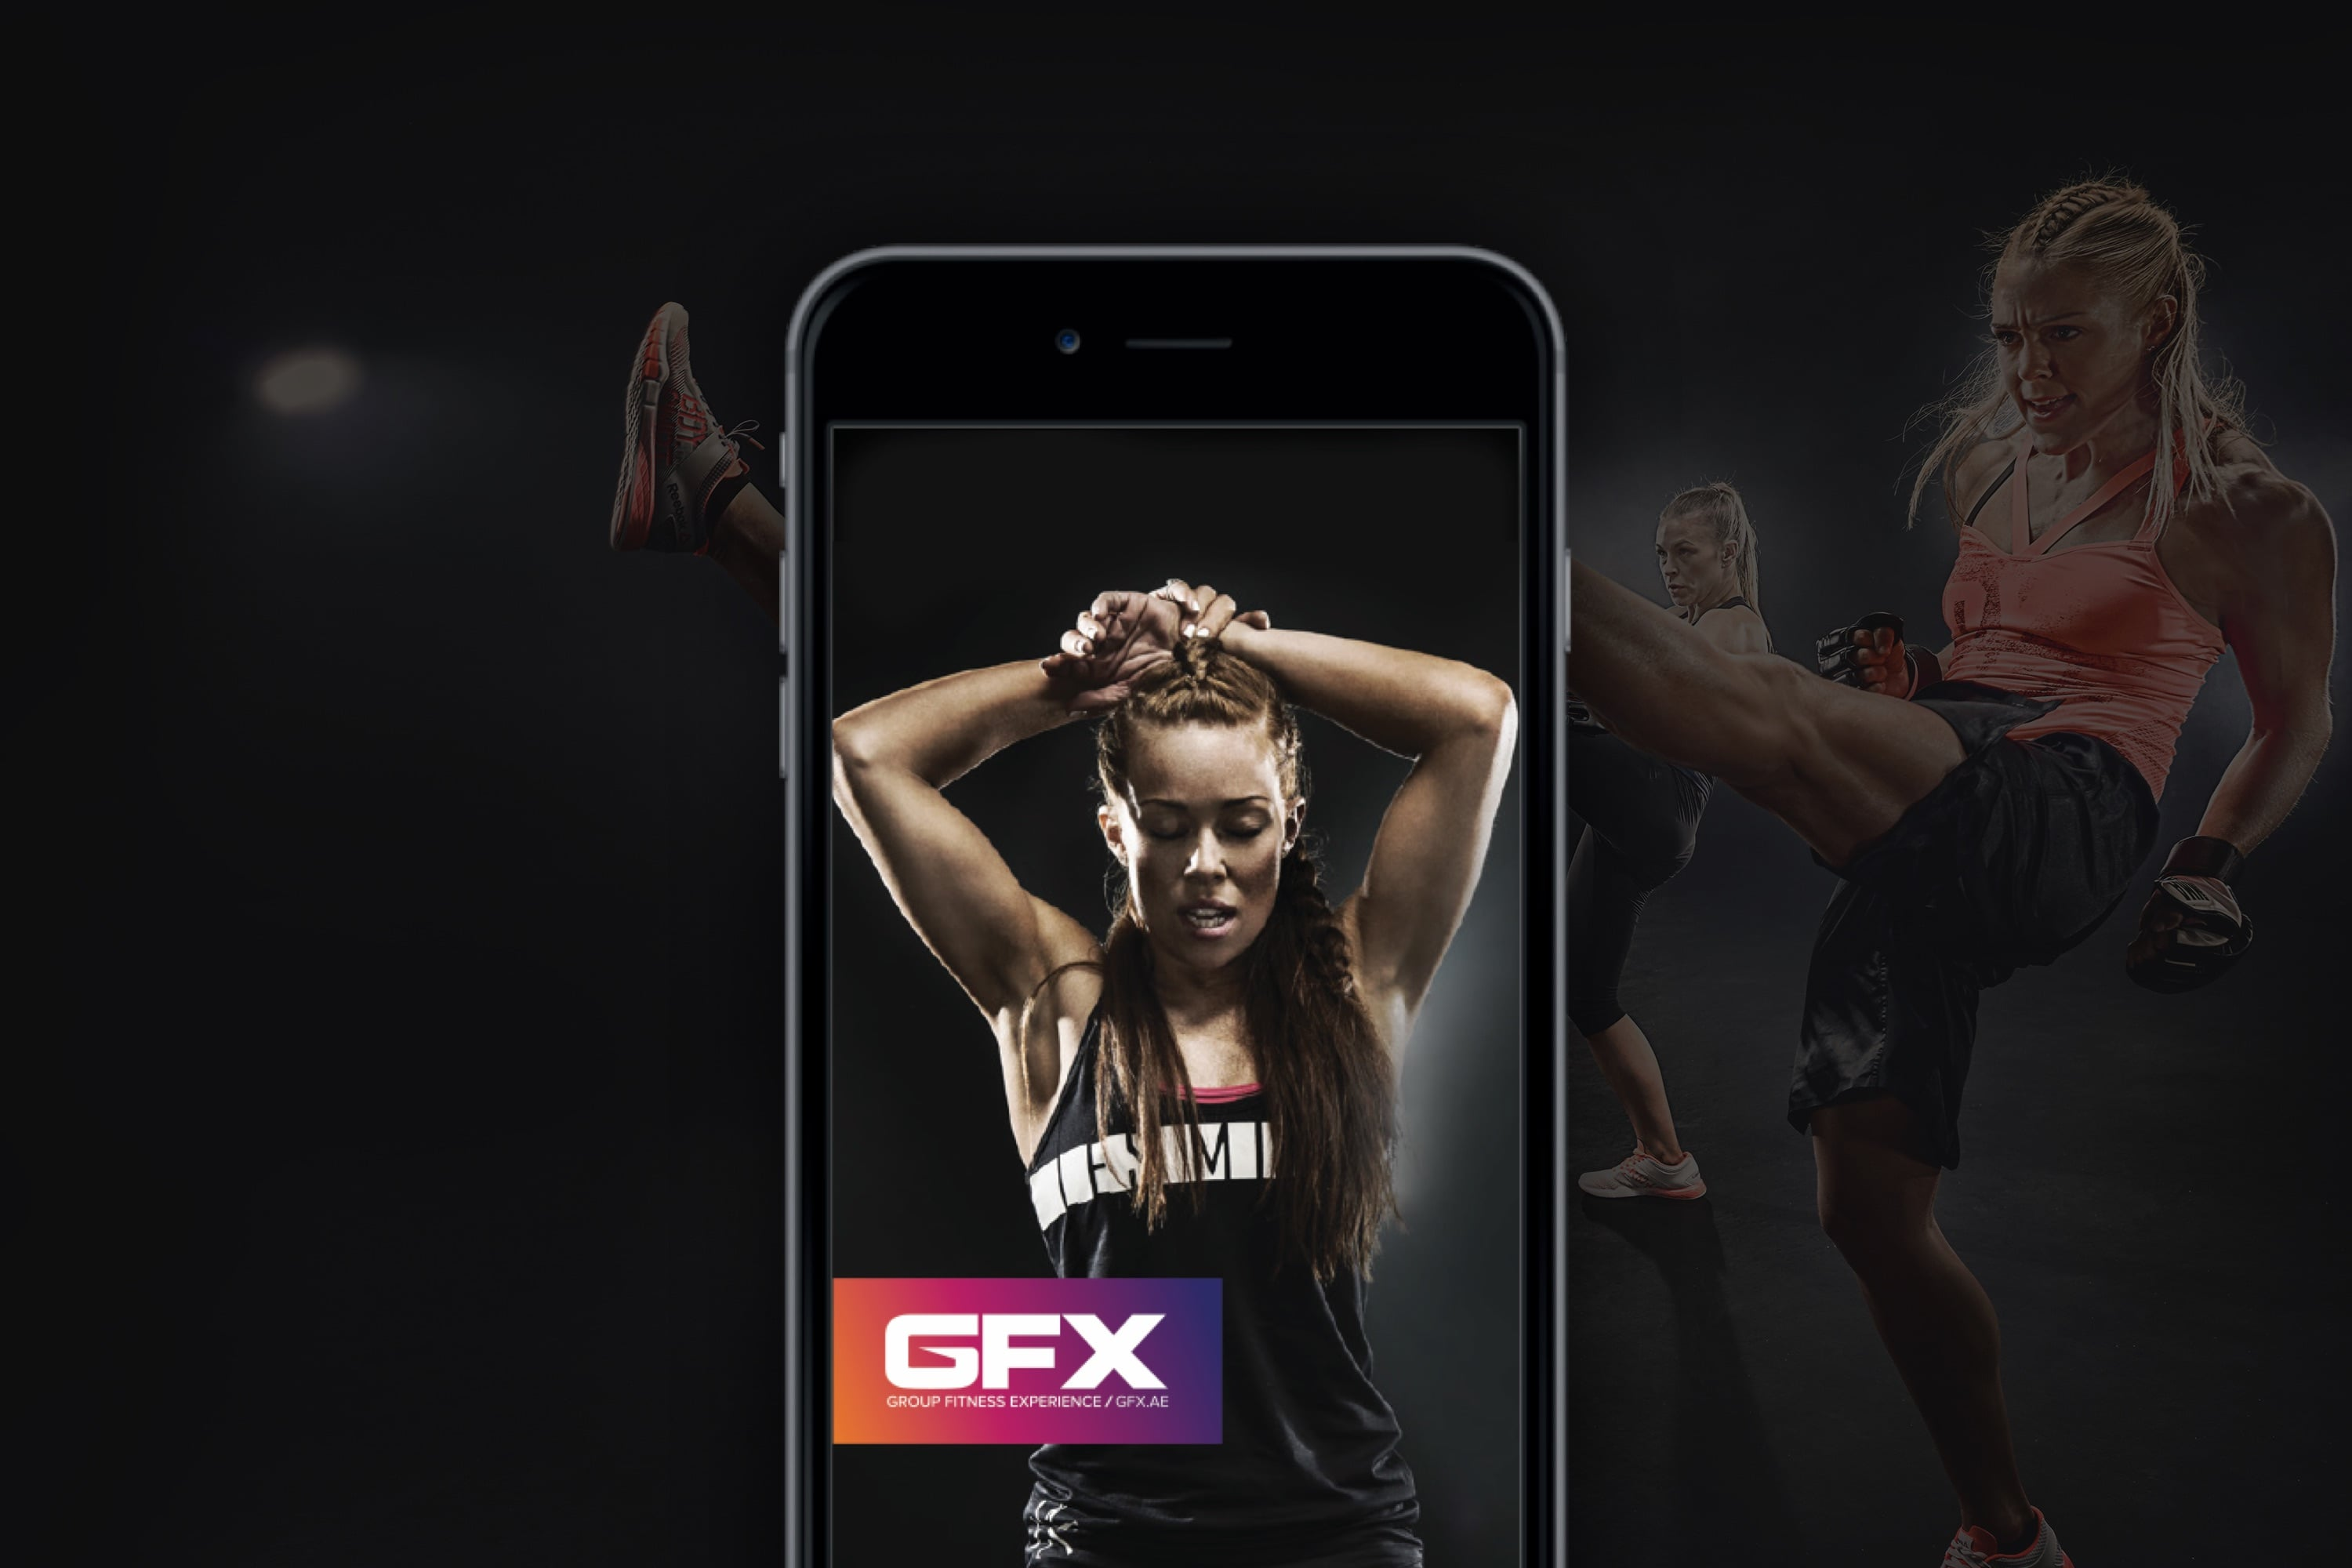 Download the FREE GFX App - Book Your Class Now | GFX ae